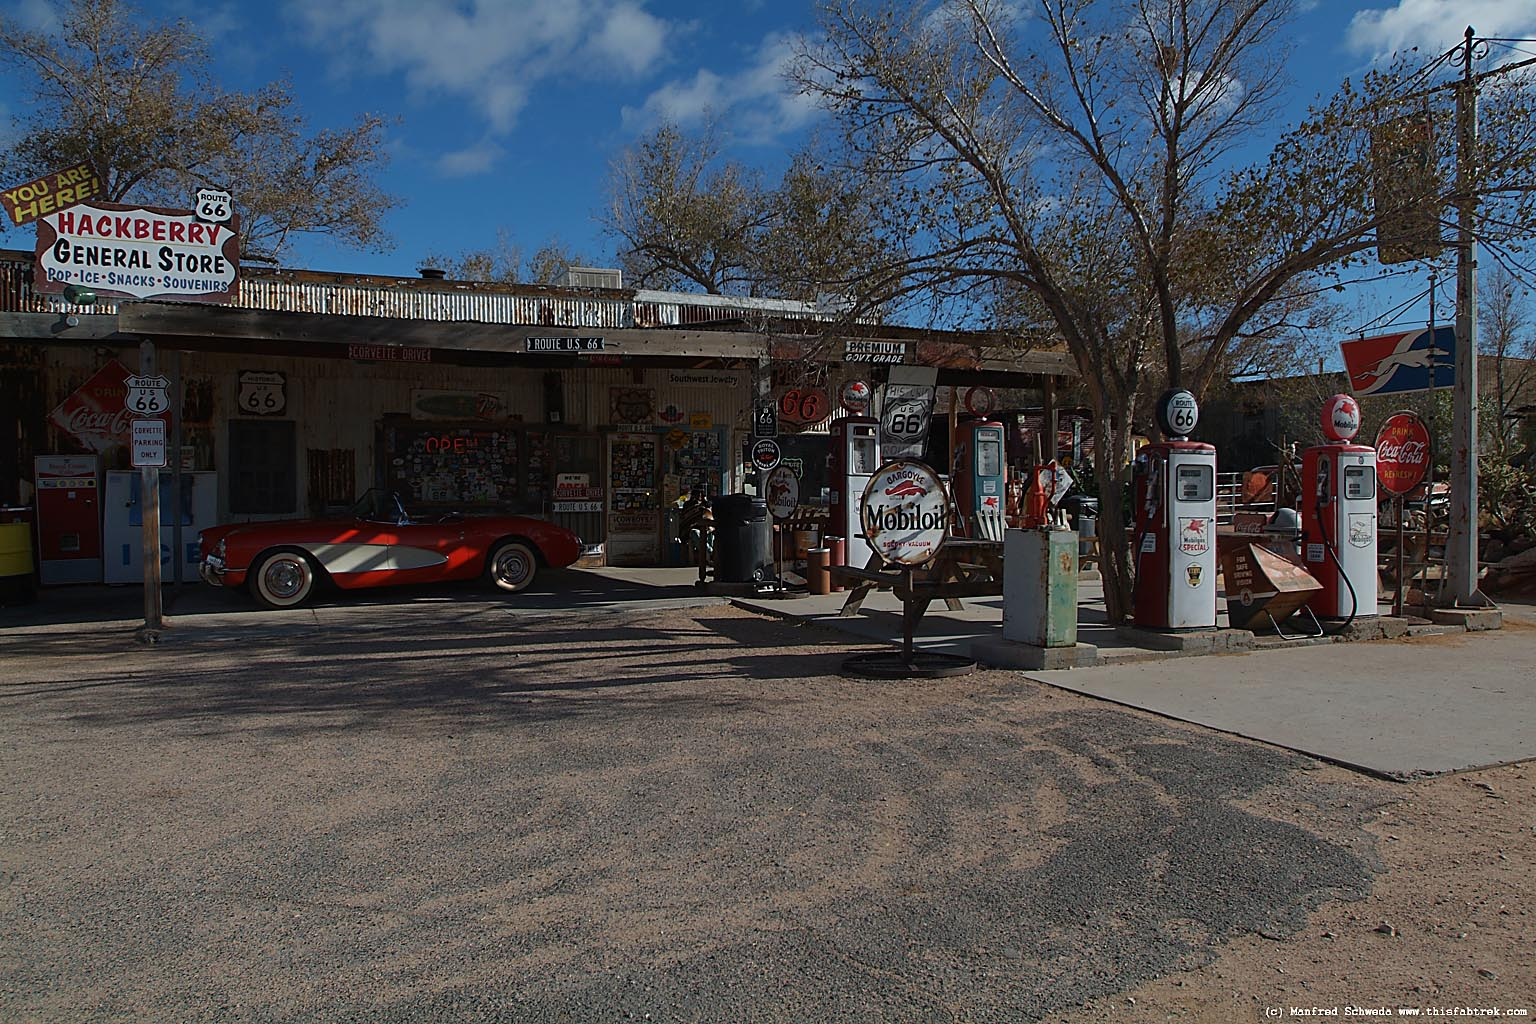 Hackberry Route 66 Photography and Journey Grand